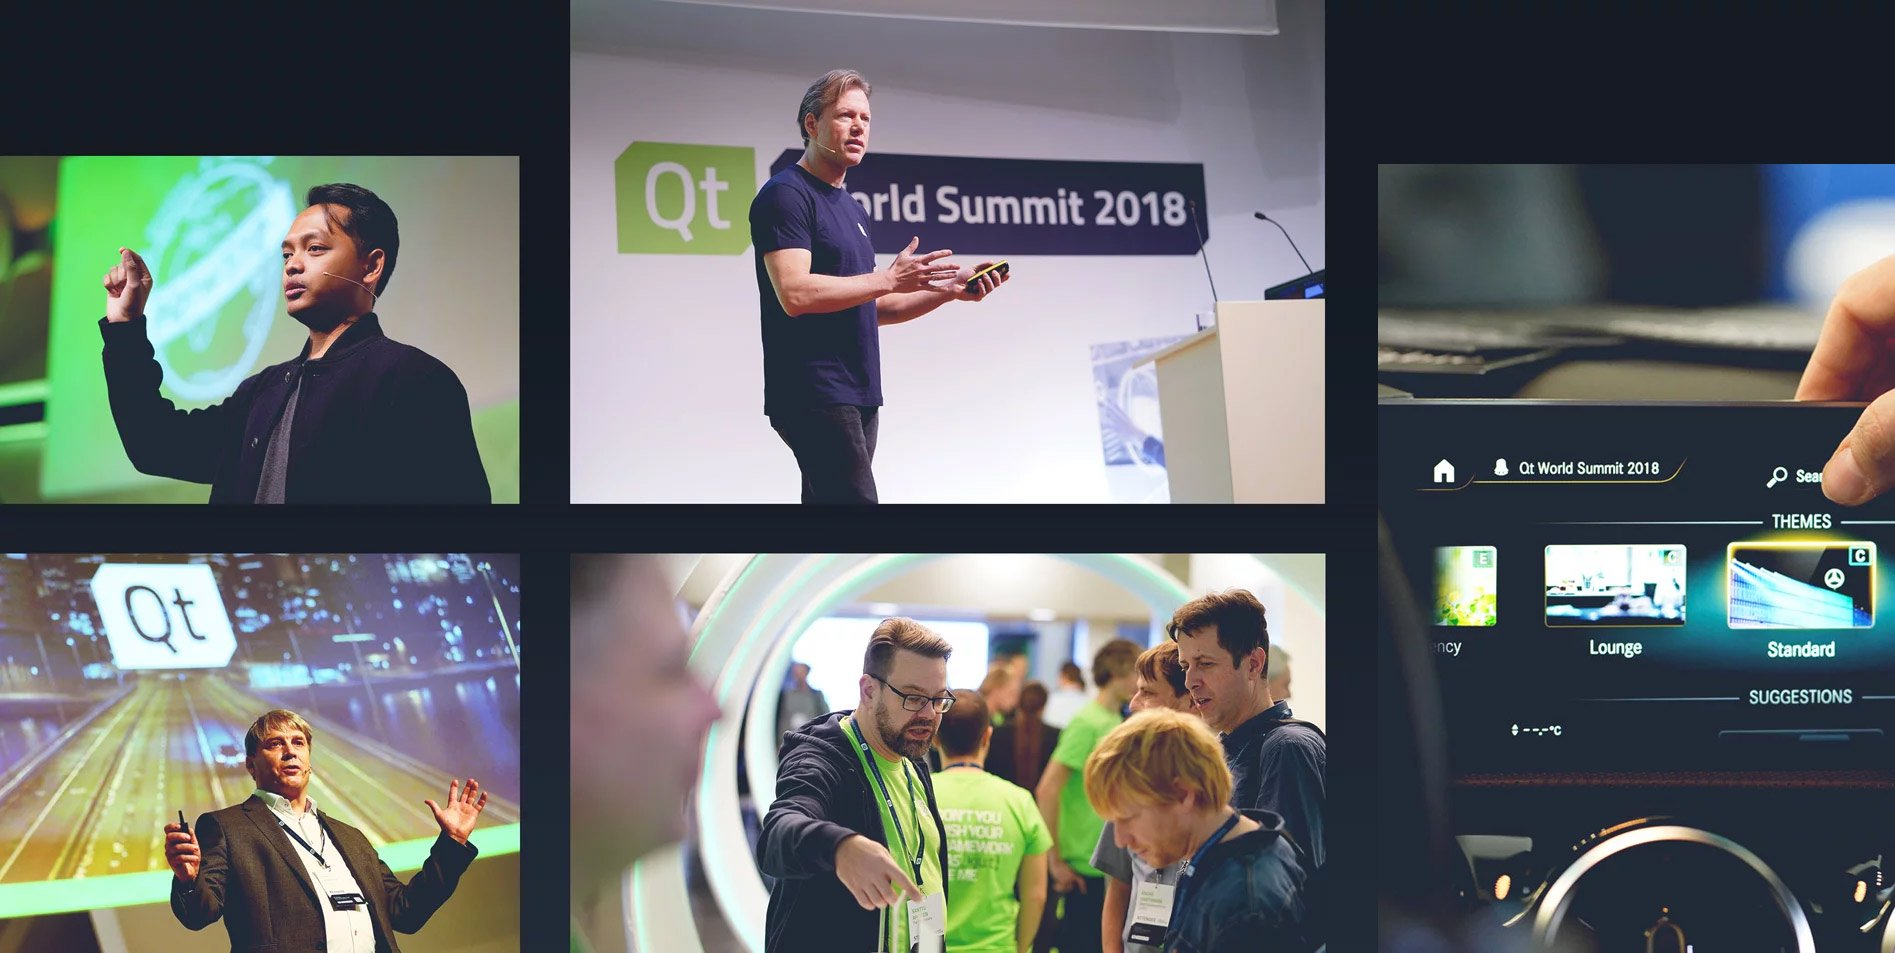 #QtWS20 Rock Star Speakers, Super Early Birds & Training